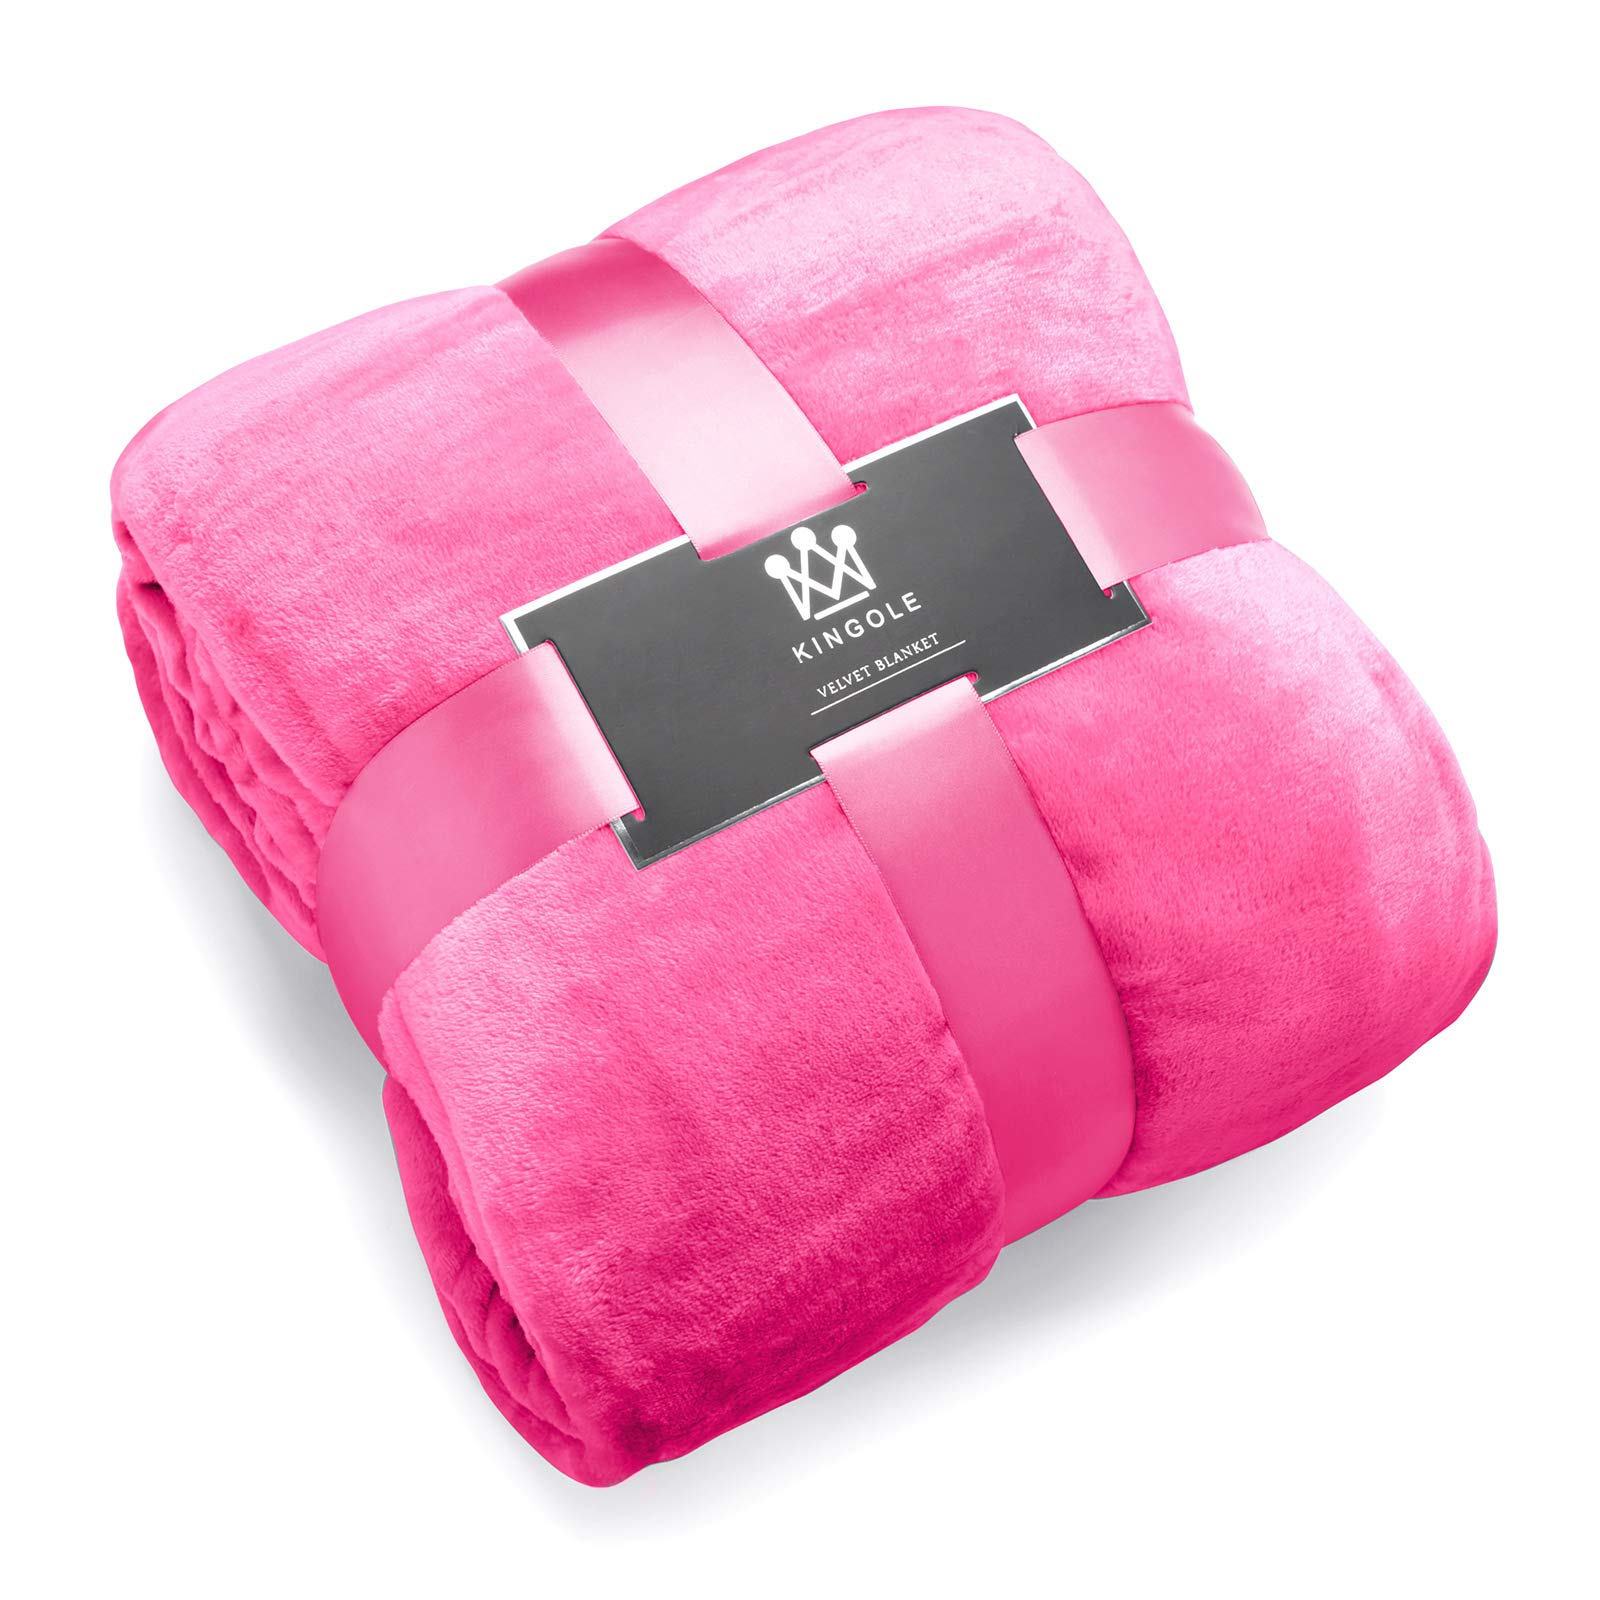 Kingole Flannel Fleece Microfiber Throw Blanket, Luxury Rose Pink King Size Lightweight Cozy Couch Bed Super Soft and Warm Plush Solid Color 350GSM (108 x 90 inches)